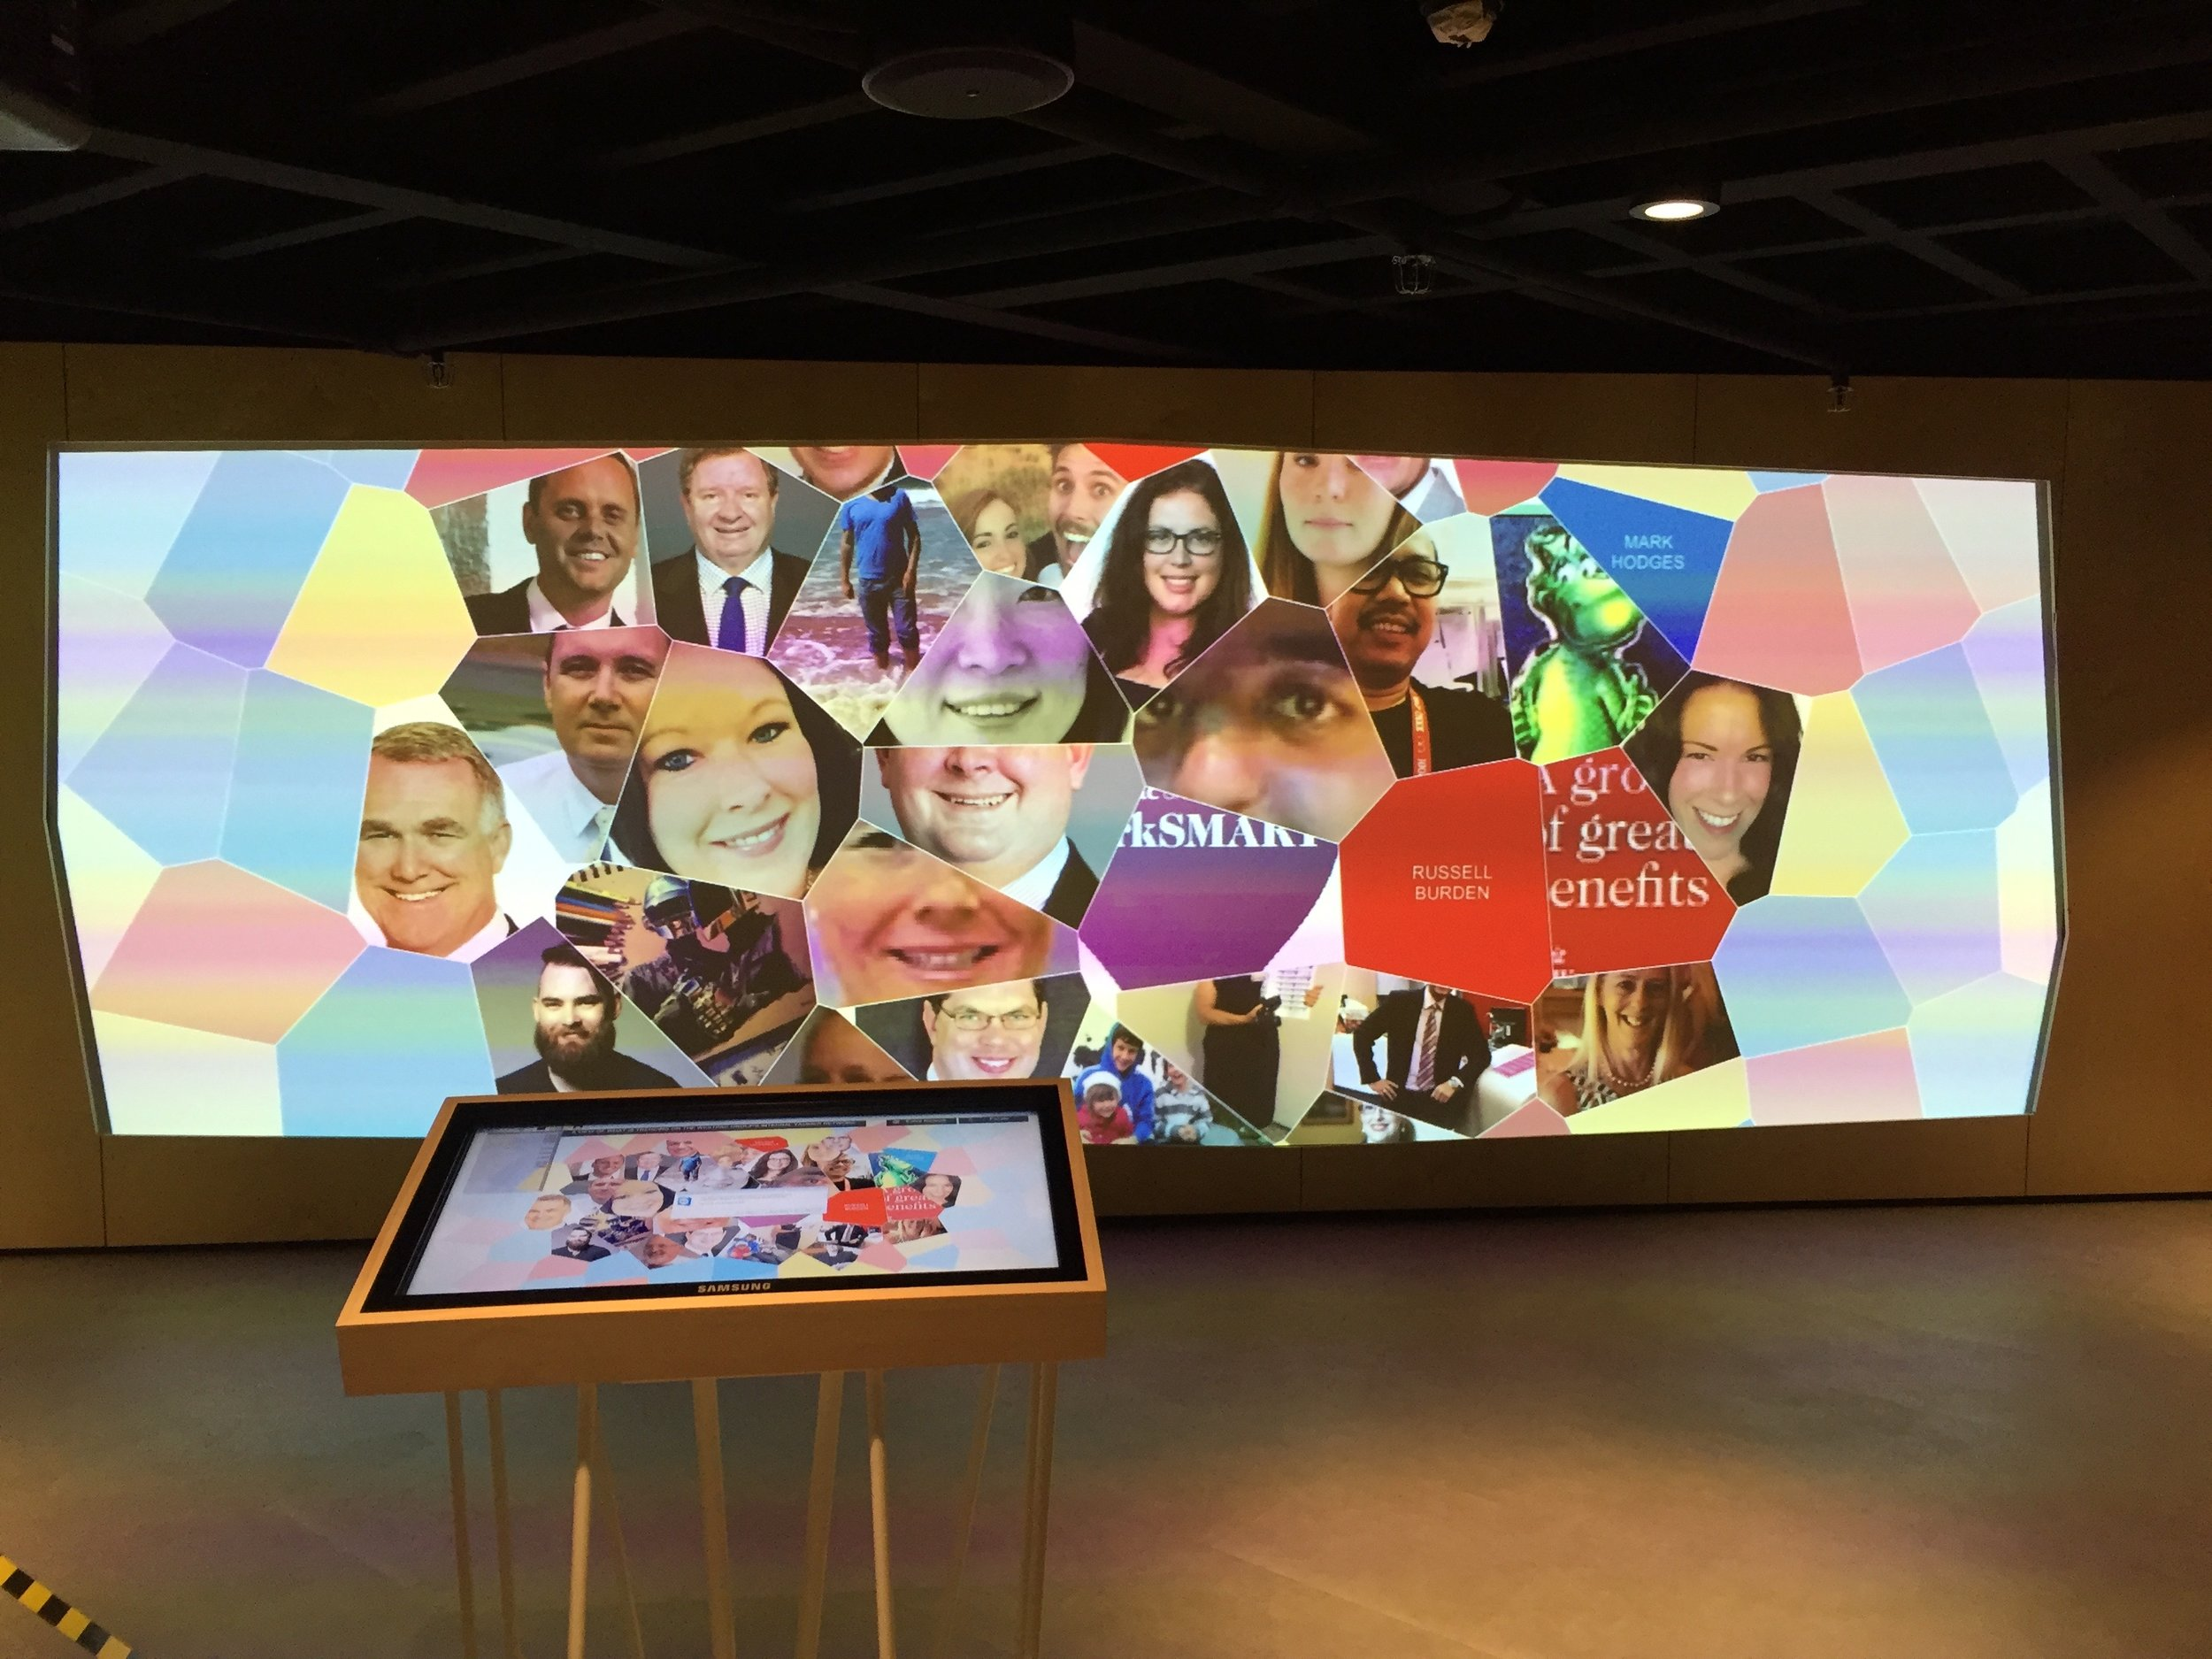 Westpac Experience Centre - Create a space to hack into possibility.High-end design and fabrication - Cutting edge audio and visual technology - Writeable surfaces and adaptable display solutions - Data visualization - Virtual reality experiences - Interactive content